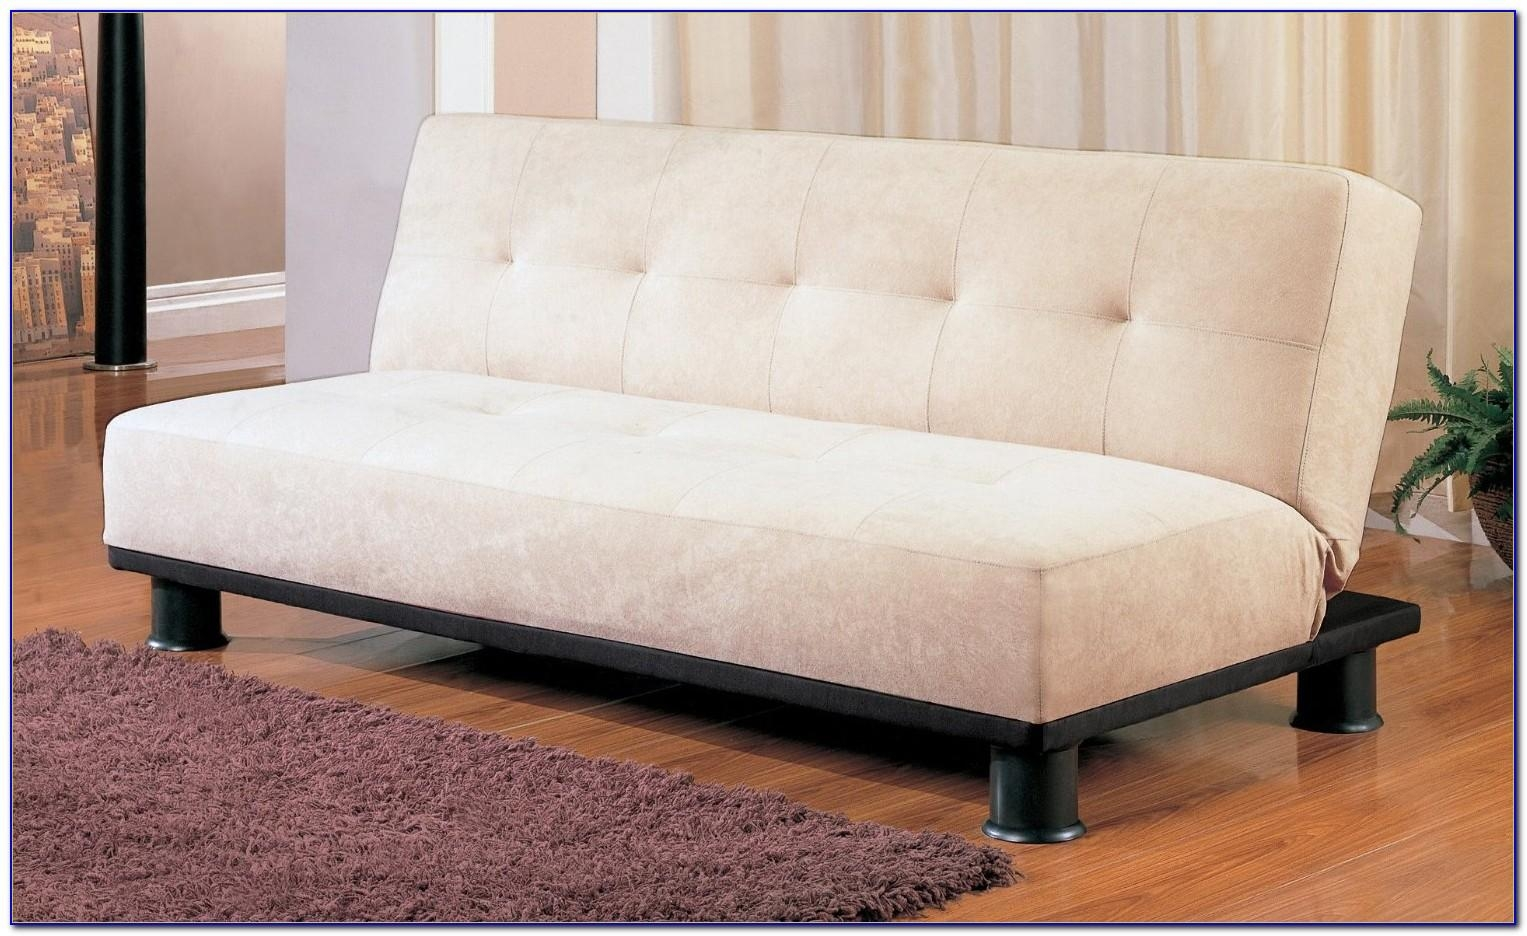 Luxury Softee Sofa Bed 89 For Castro Convertibles Beds With And Inside Castro Convertible Sofa Beds (Image 12 of 20)